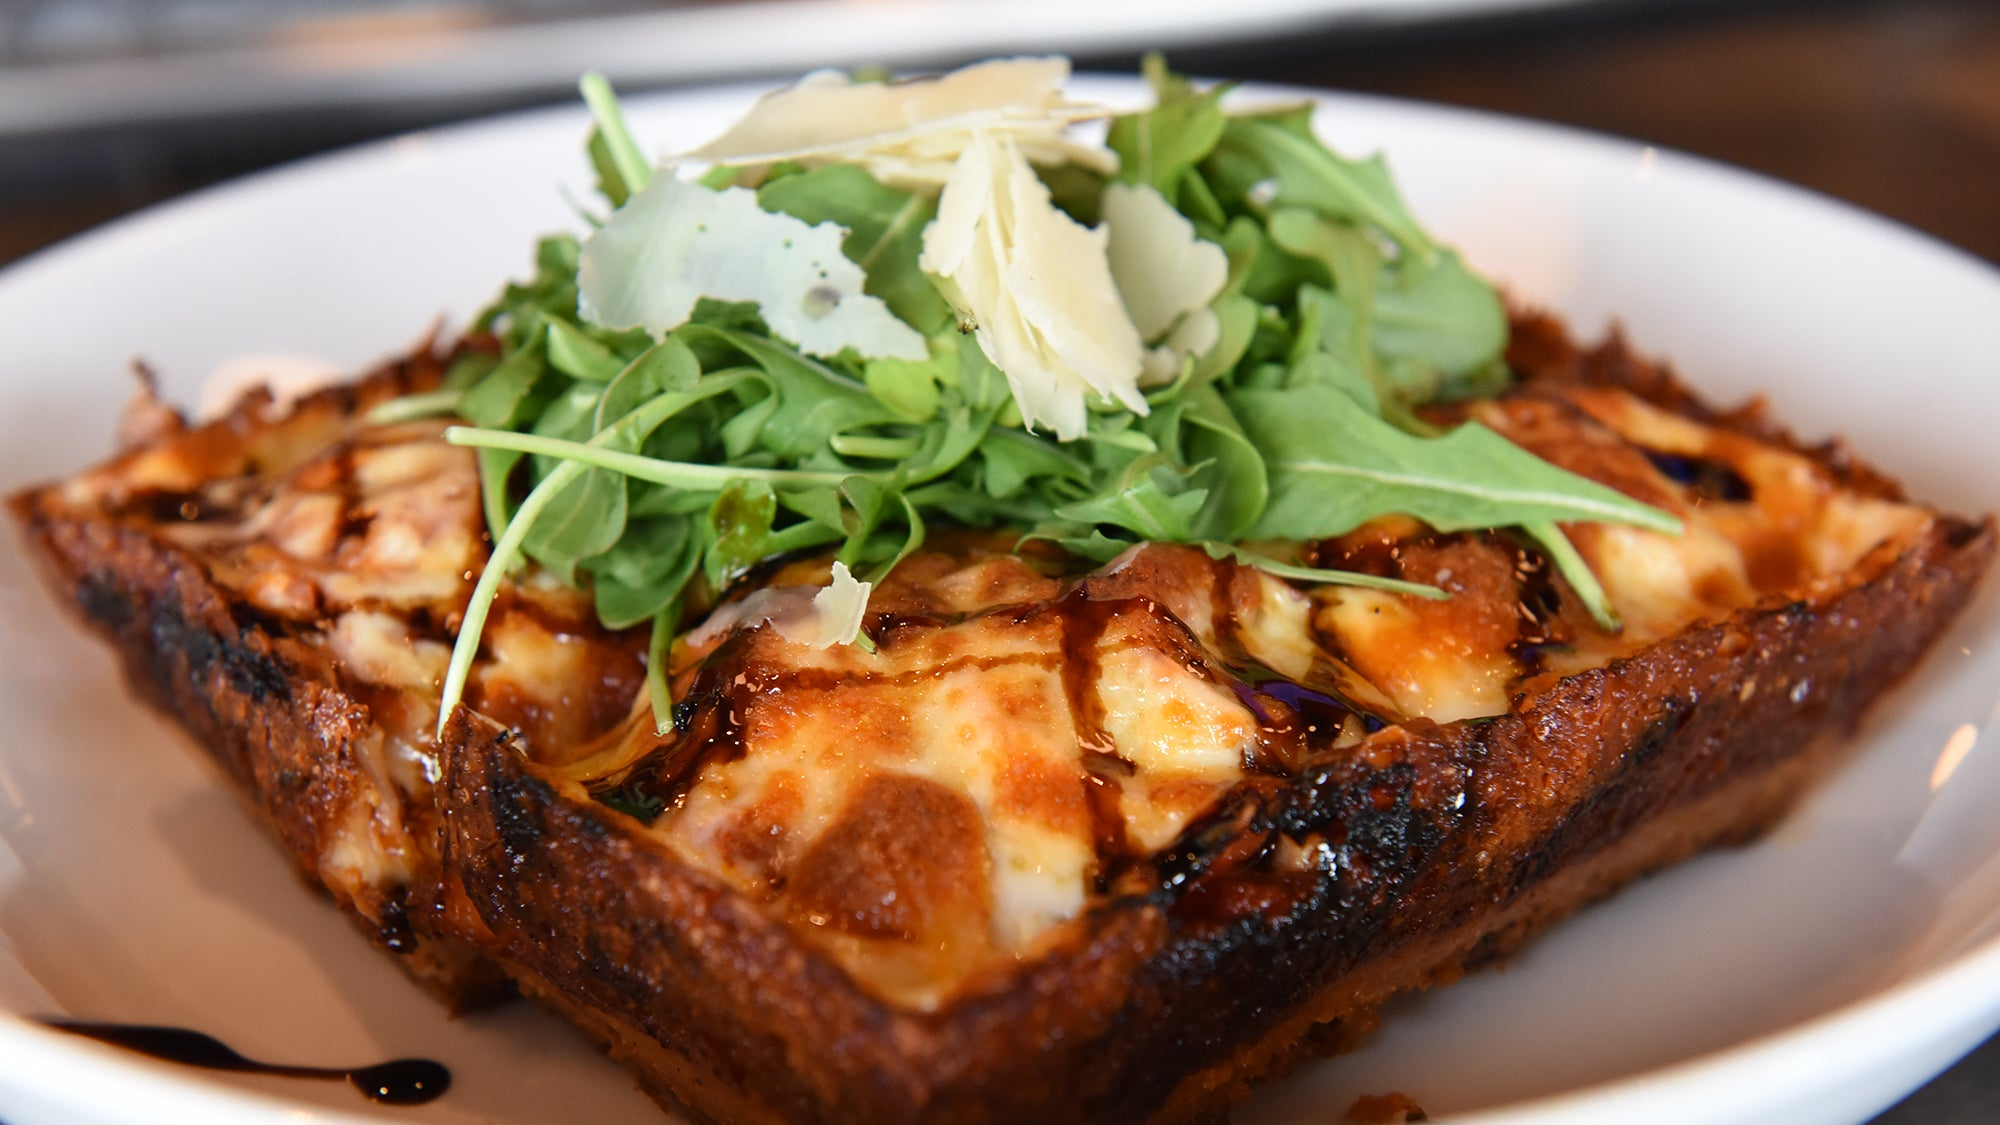 Detroit-style pizza at LongCross Bar & Kitchen